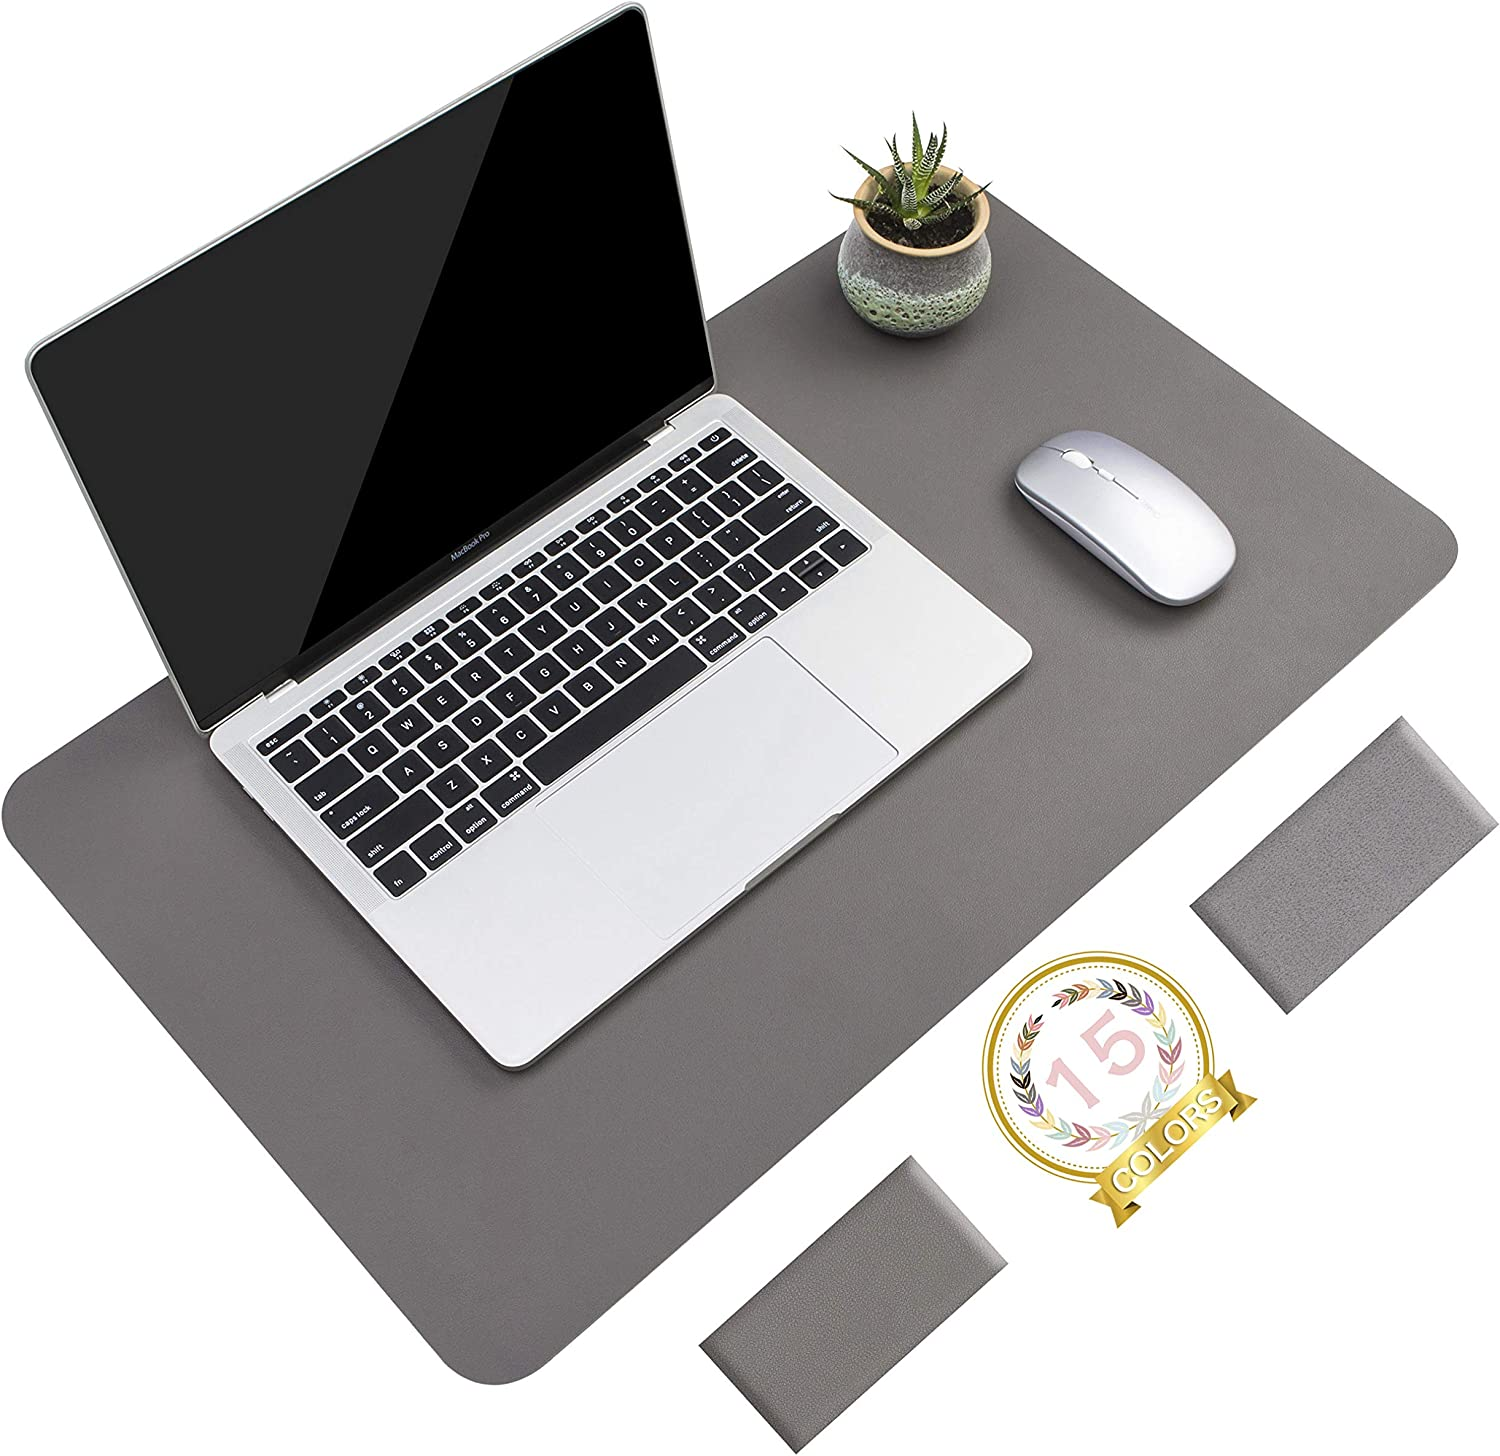 """Non-Slip Desk Pad, Waterproof PVC Leather Desk Table Protector, Ultra Thin Large Mouse Pad, Easy Clean Laptop Desk Writing Mat for Office Work/Home/Decor(Dark Gray, 23.6"""" x 13.7"""")"""